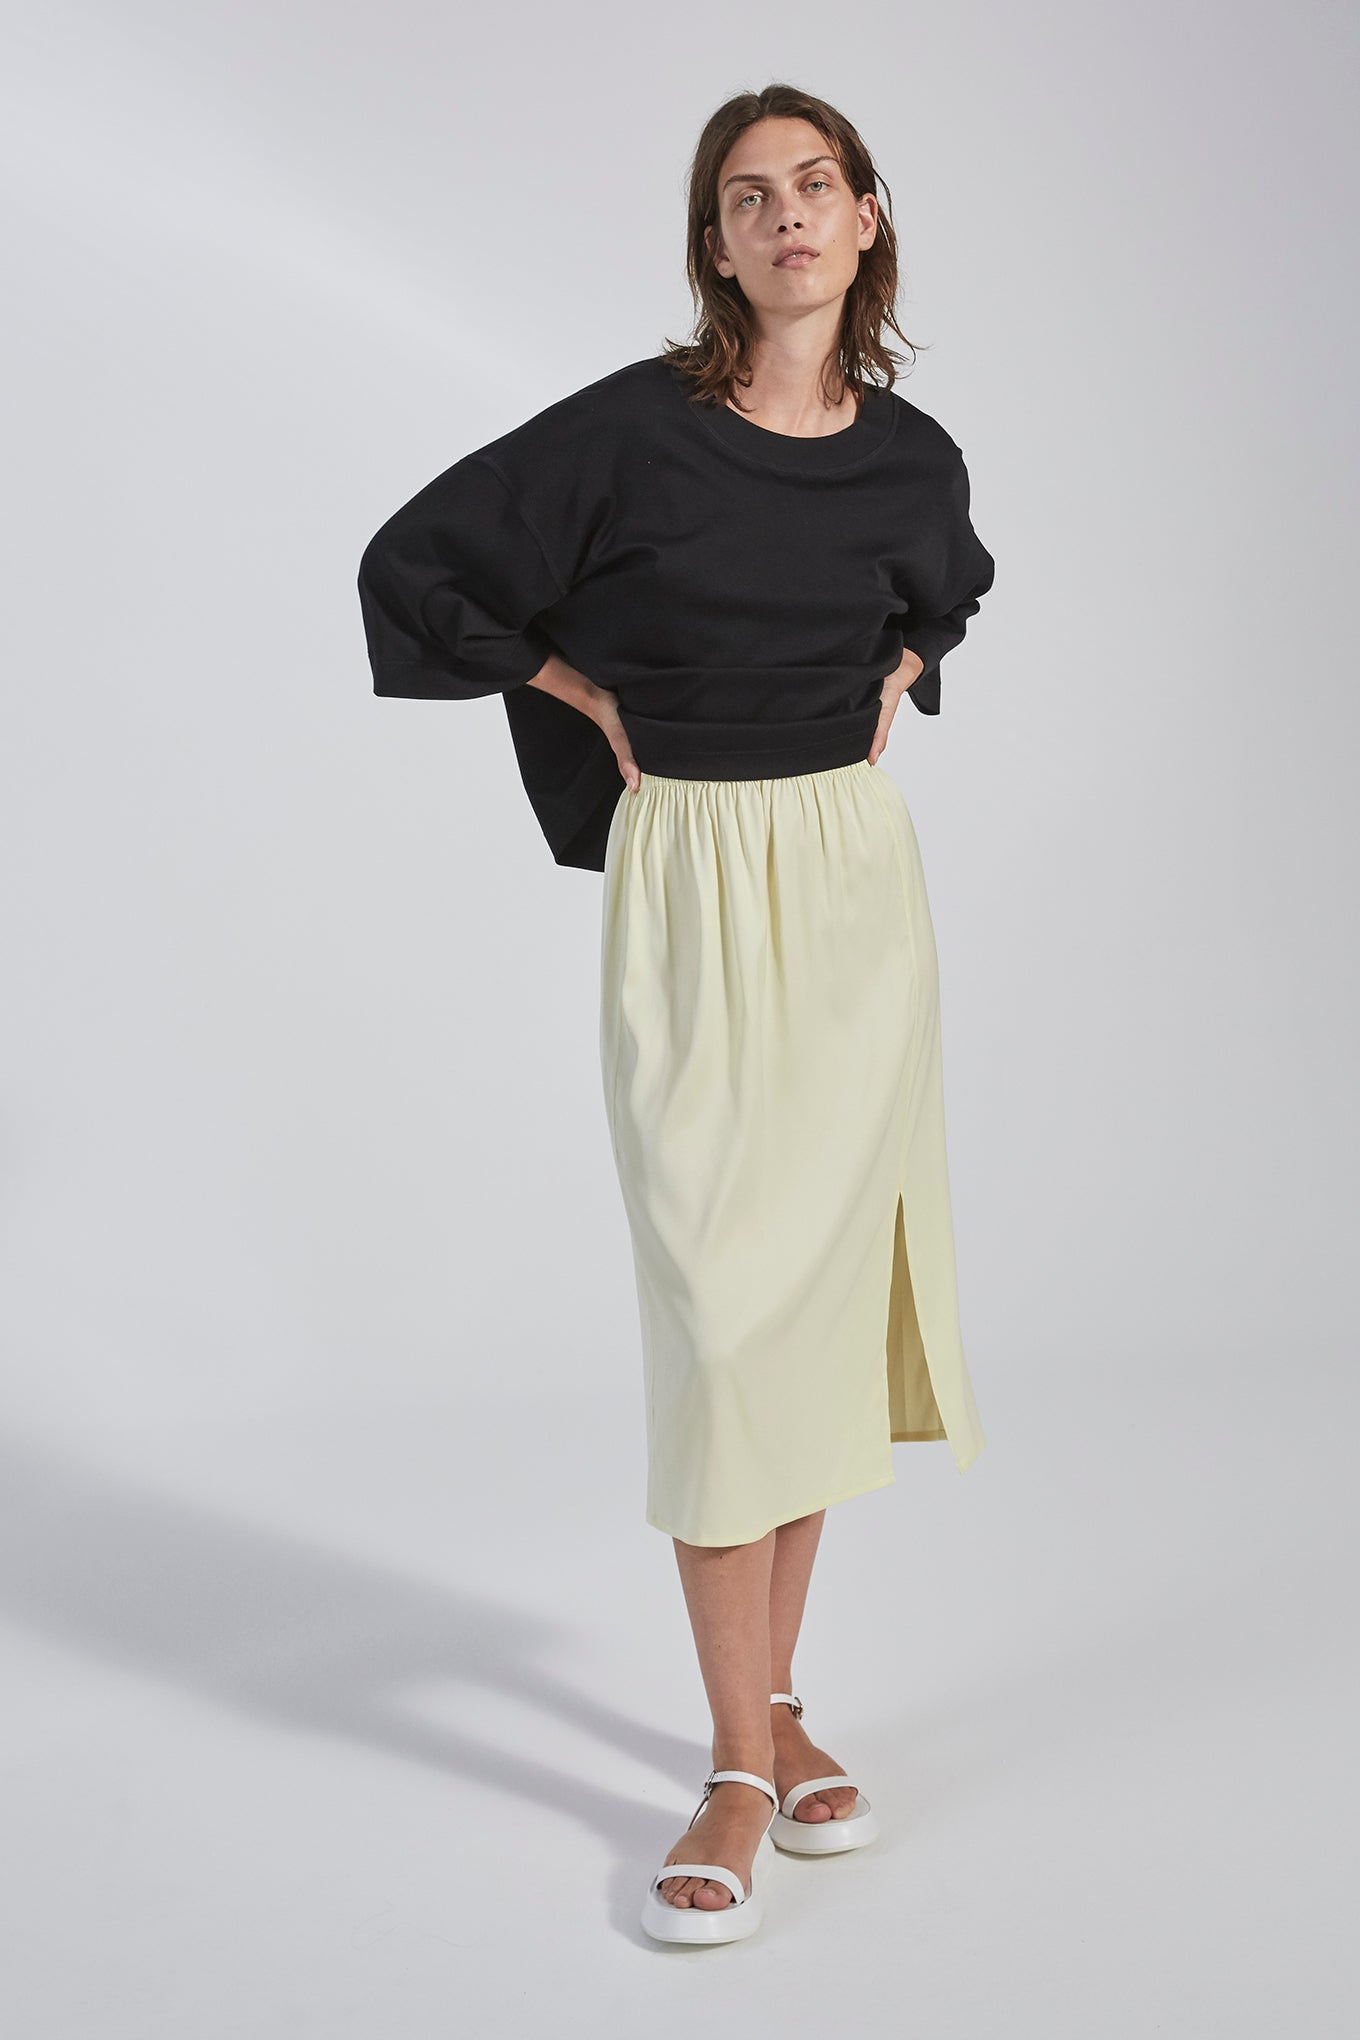 Nova Skirt - Lemon - Silk/Spandex Twill